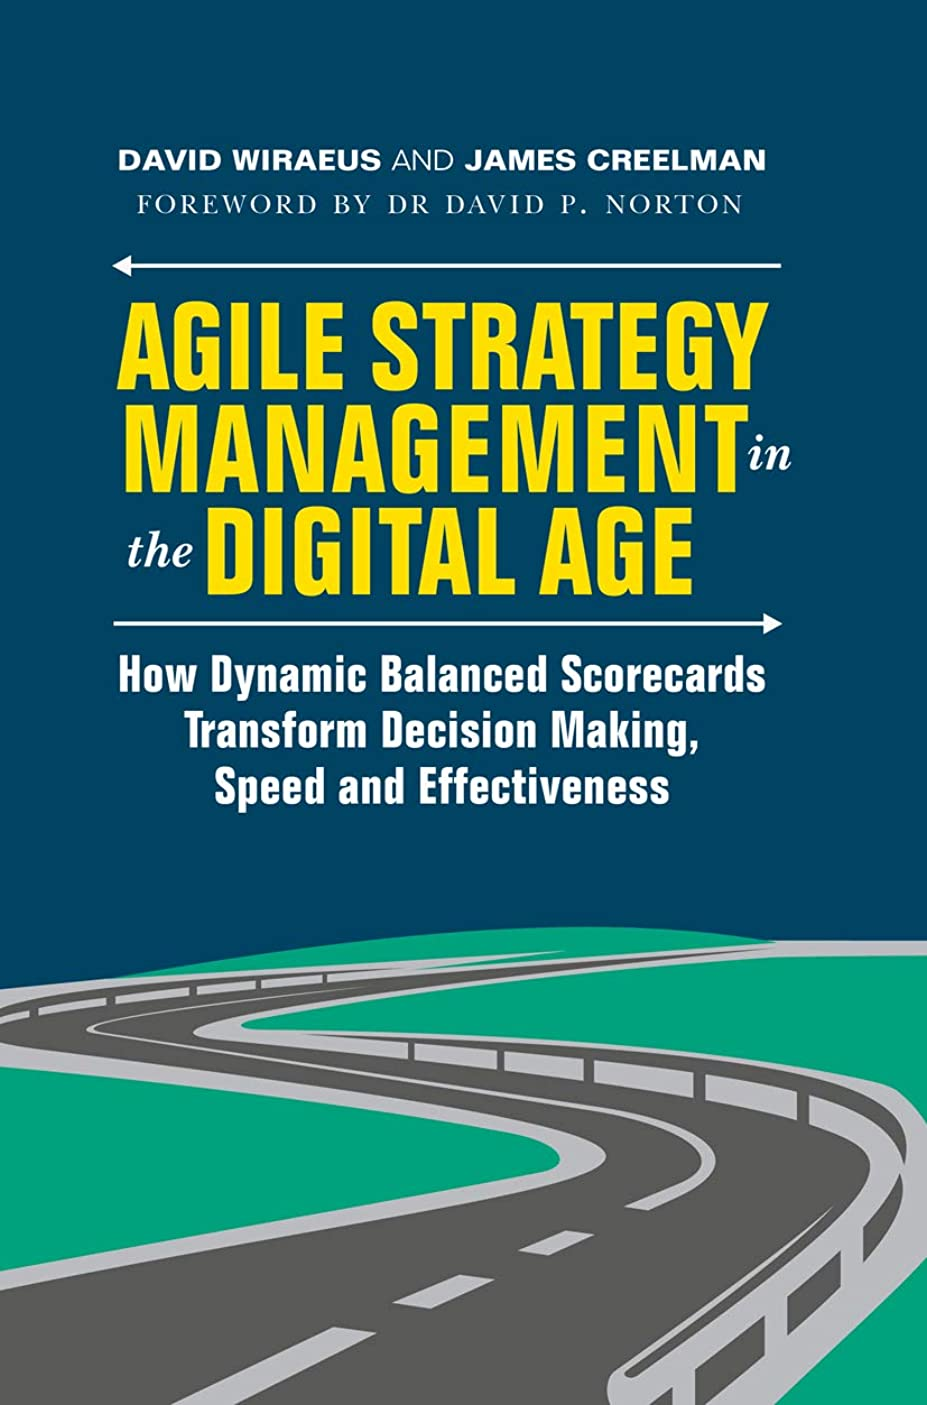 Agile Strategy Management in the Digital Age: How Dynamic Balanced Scorecards Transform Decision Making, Speed and Effectiveness (English Edition)